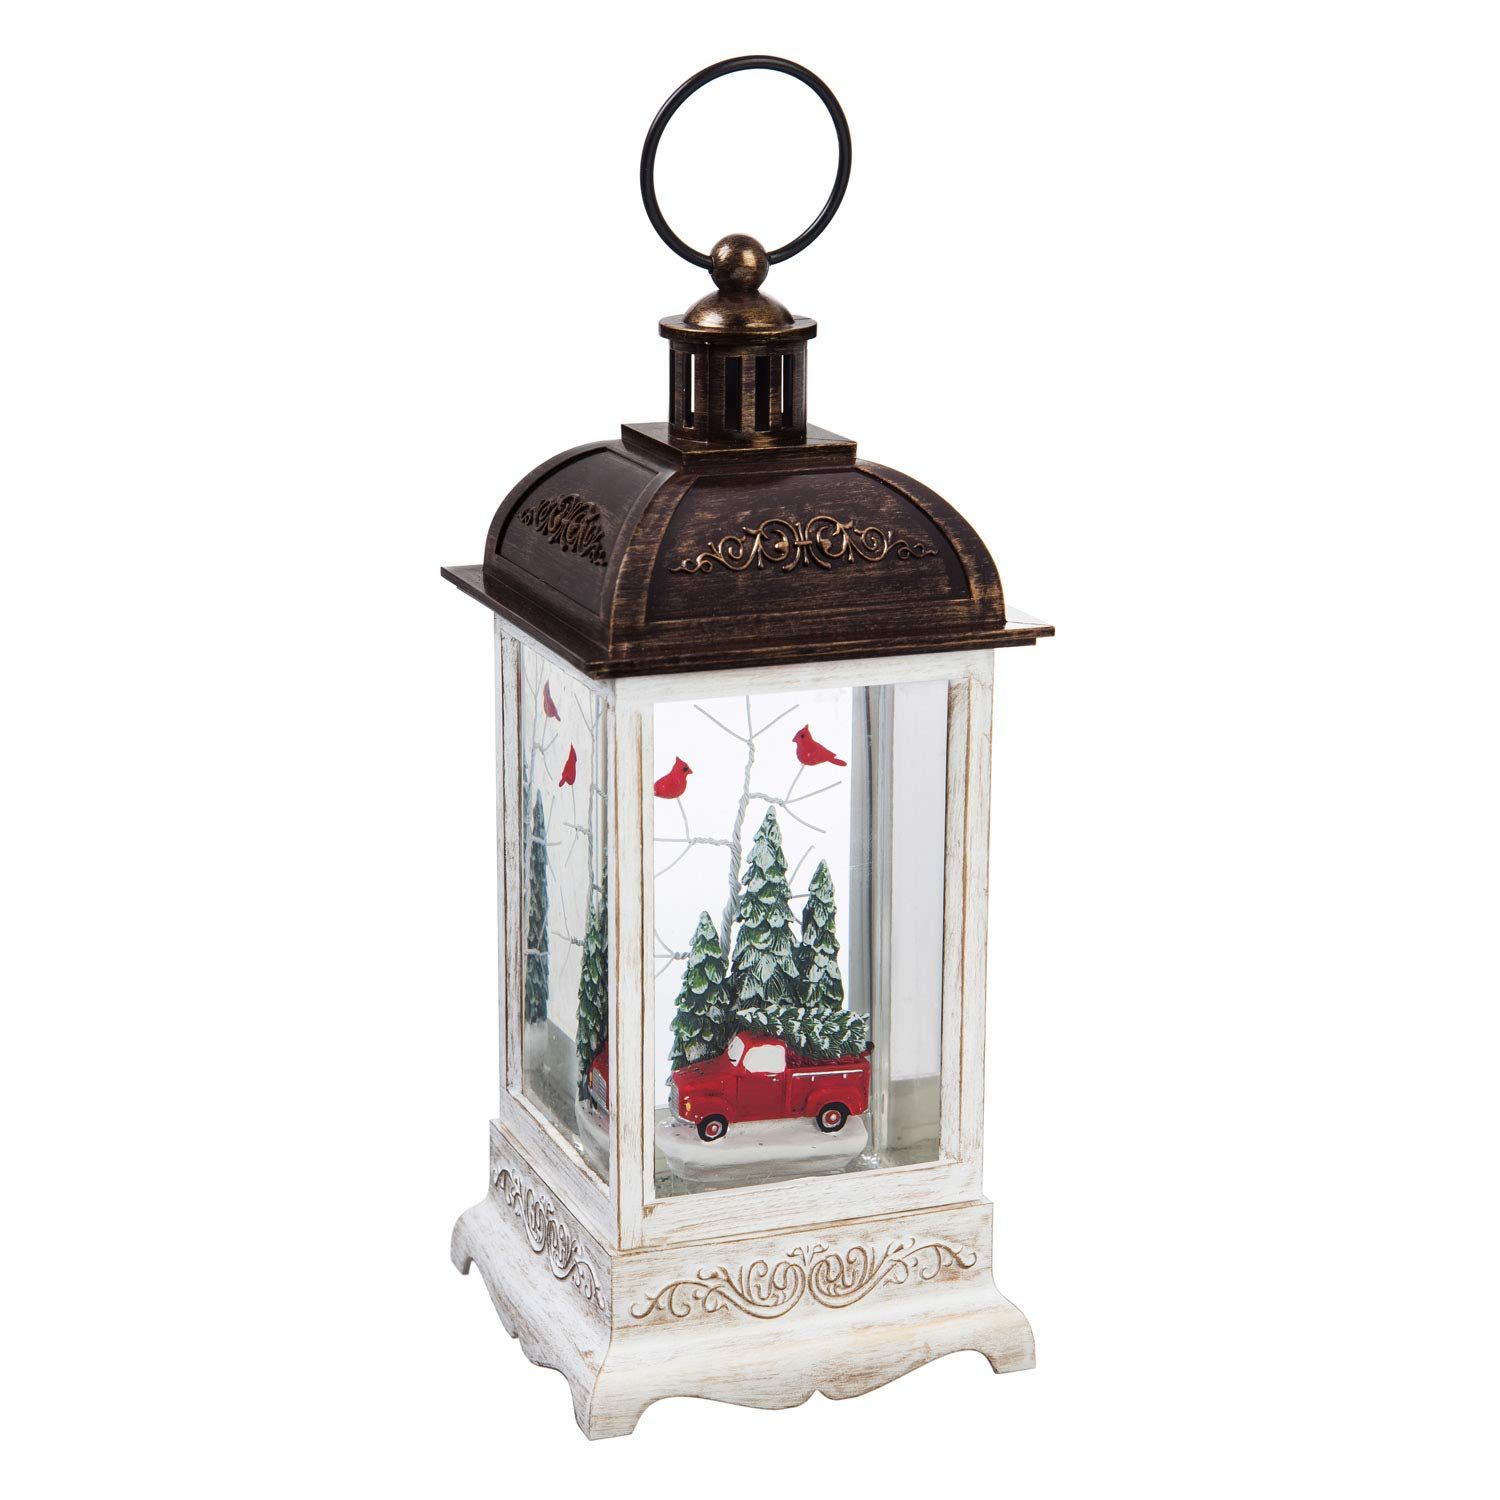 Cypress Home Red Truck and Cardinals Winter Forest Scene LED Water-Filled Lantern with Spinning Action and Timer, 19.99'' H by Cypress Home